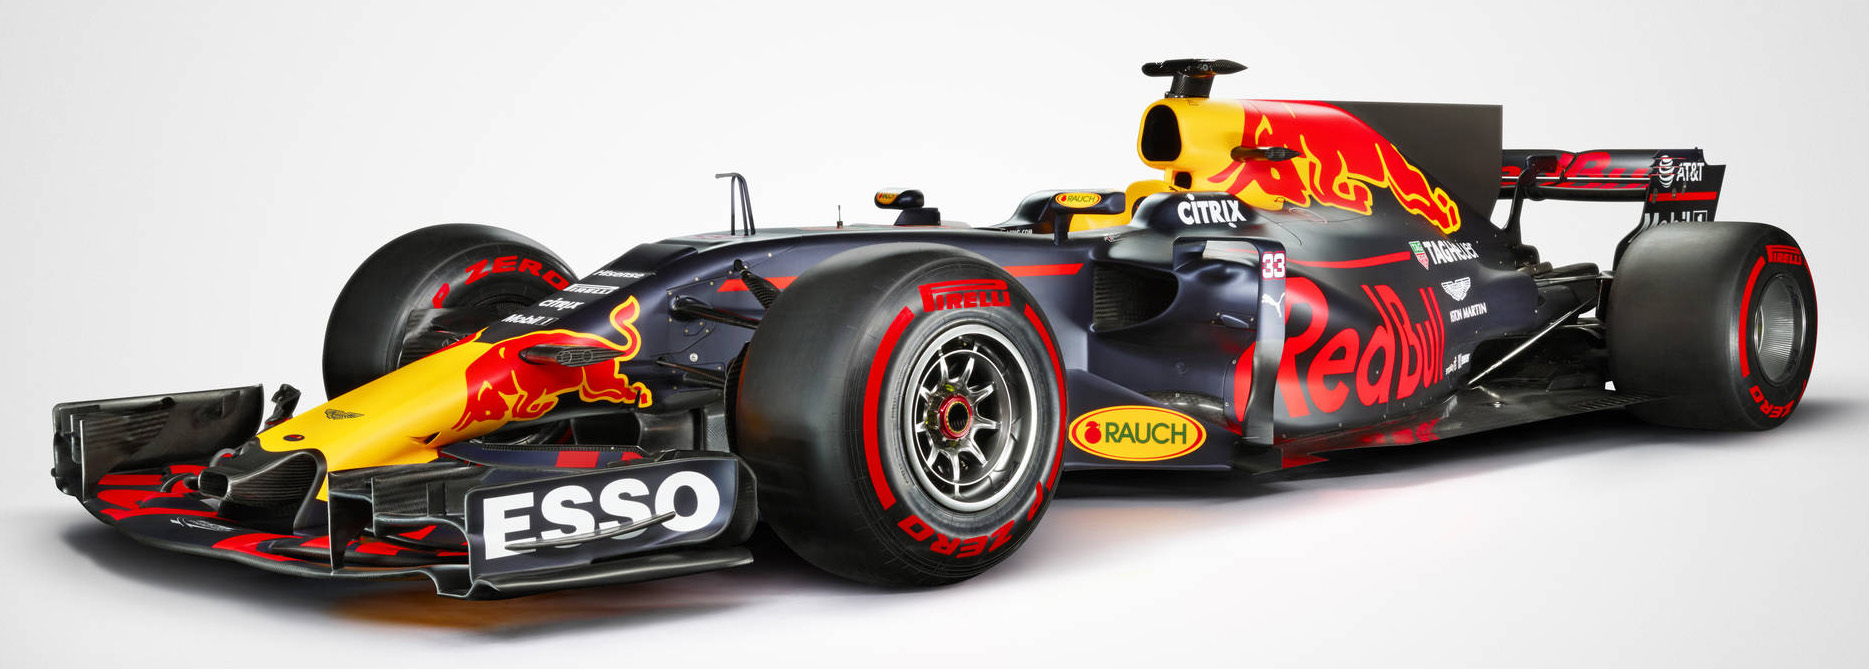 Red Bull Racing RB13  new F1 car for 2017 season